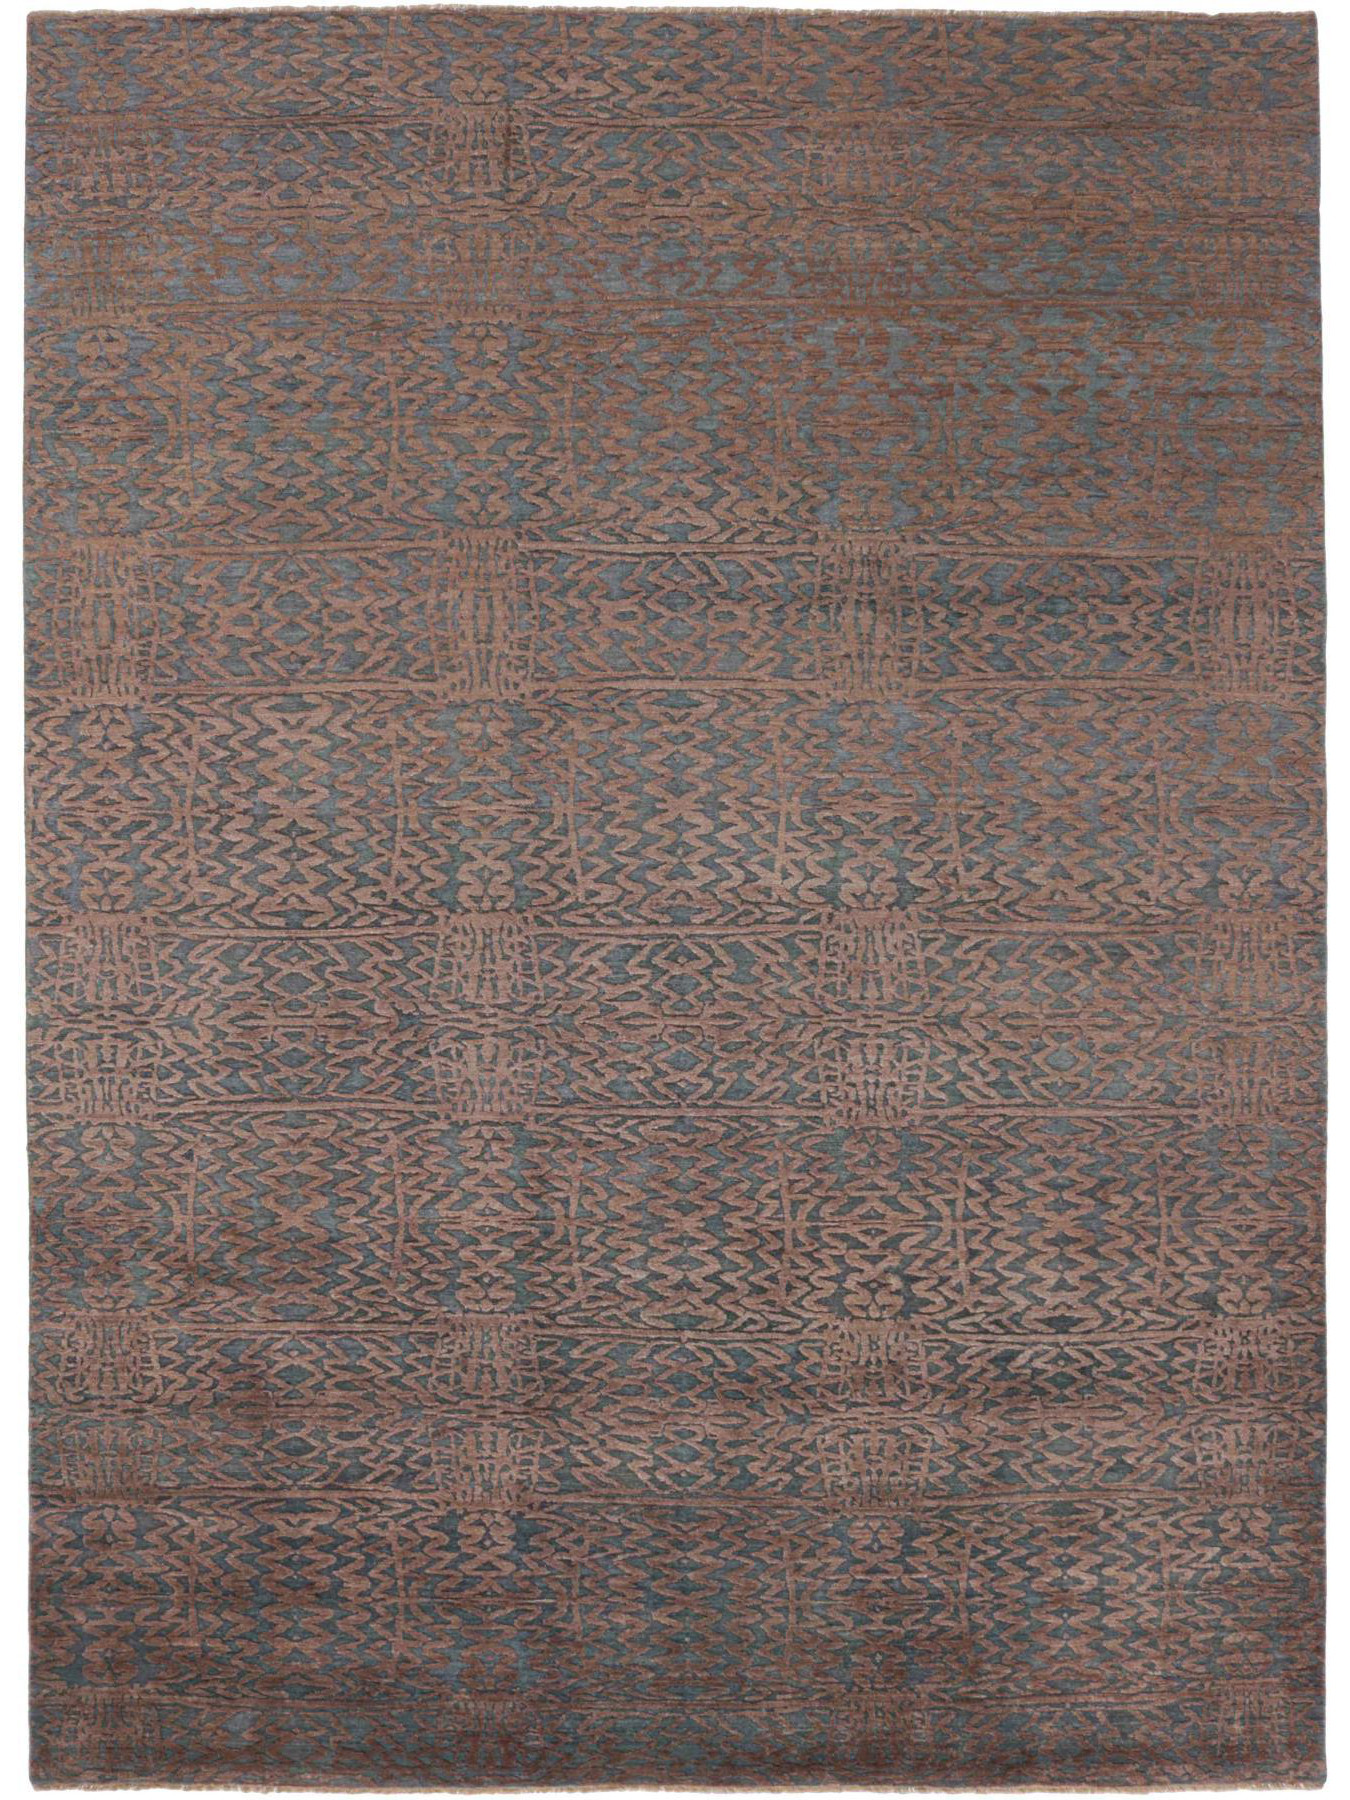 Luxury carpets - Damask-AL-417 HB-6/HB-19